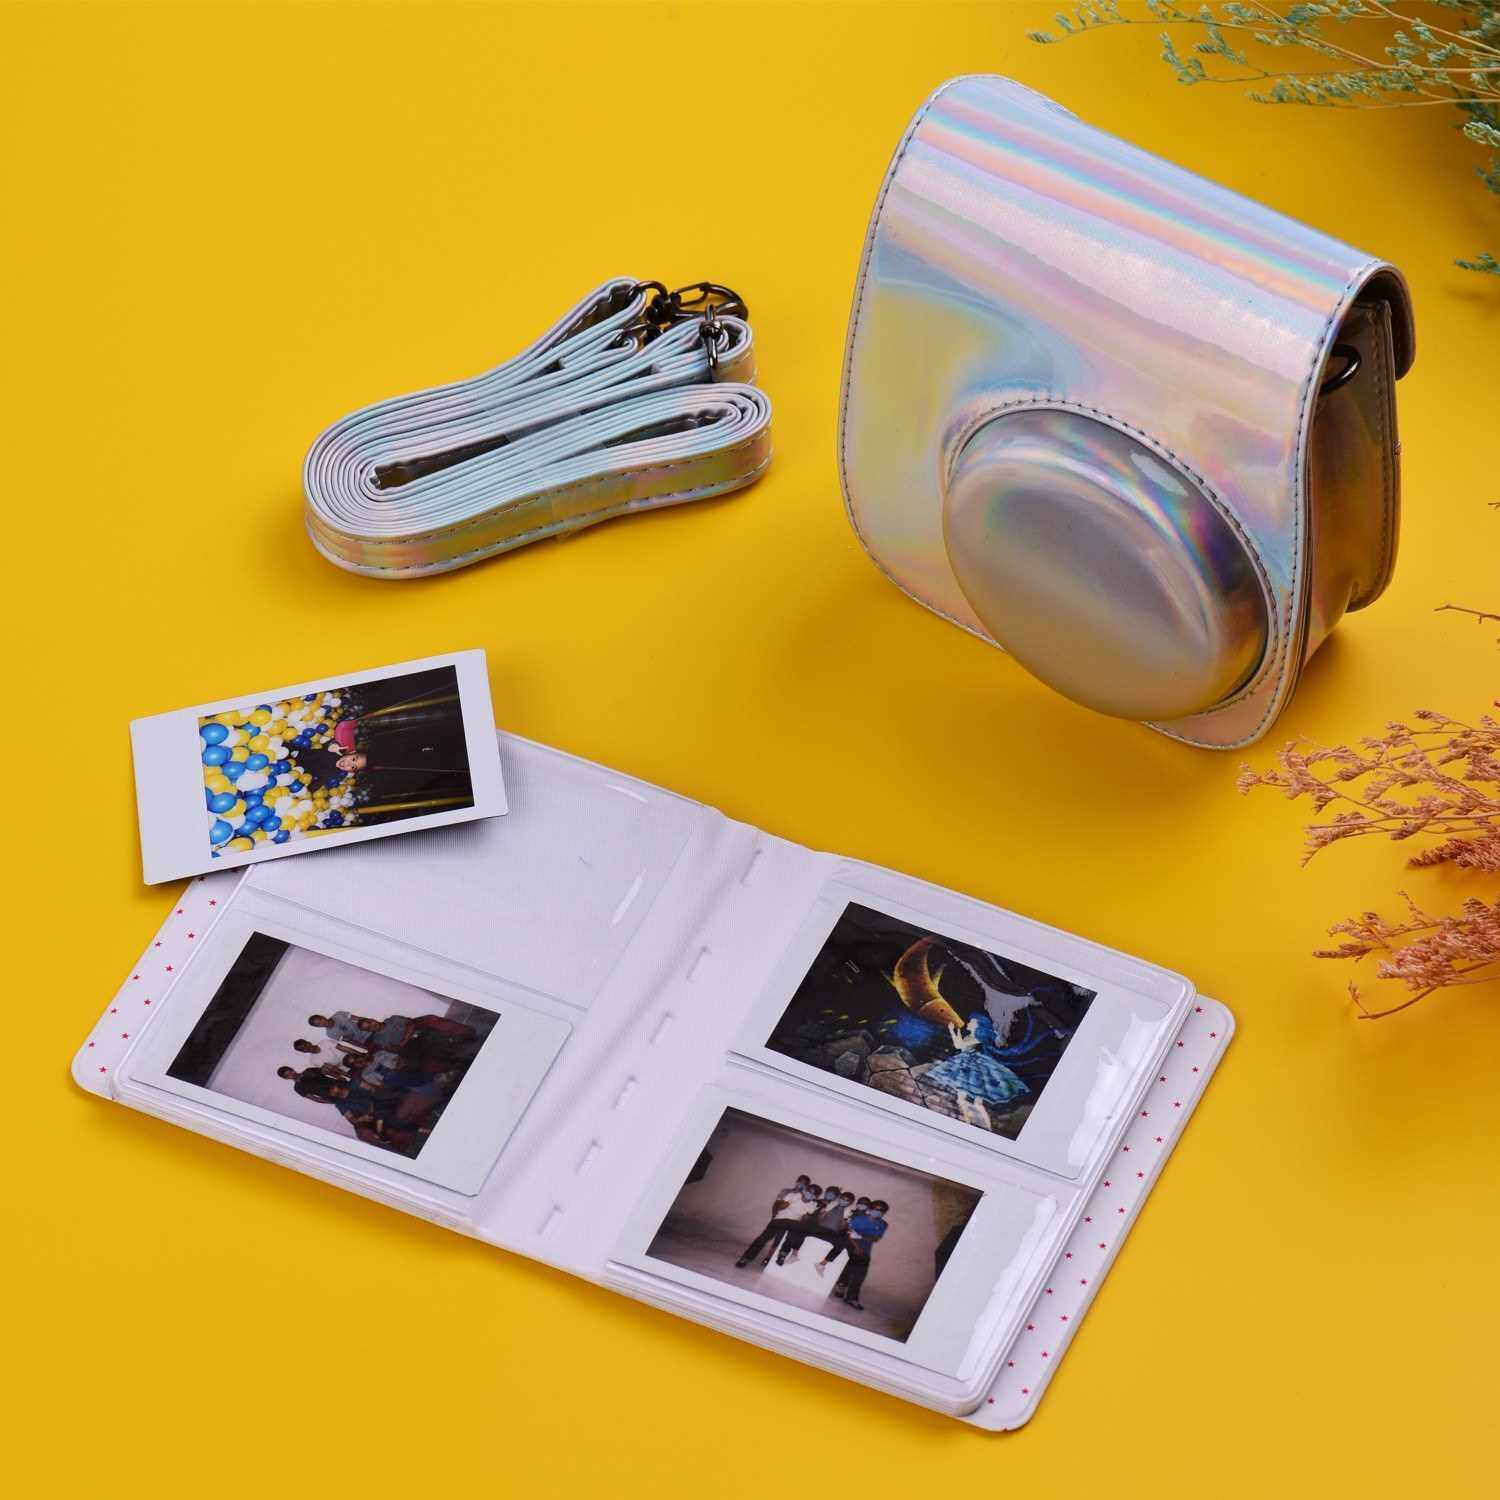 12-in-1 Instant Camera Accessories Bundle Kit Compatible with Fujifilm Instax Mini 11 Including Camera Bag/Camera Strap/Photo Album/Photo Clips/Photo Frame/Hanging String/Stickers/Pen/Filters (Silver)